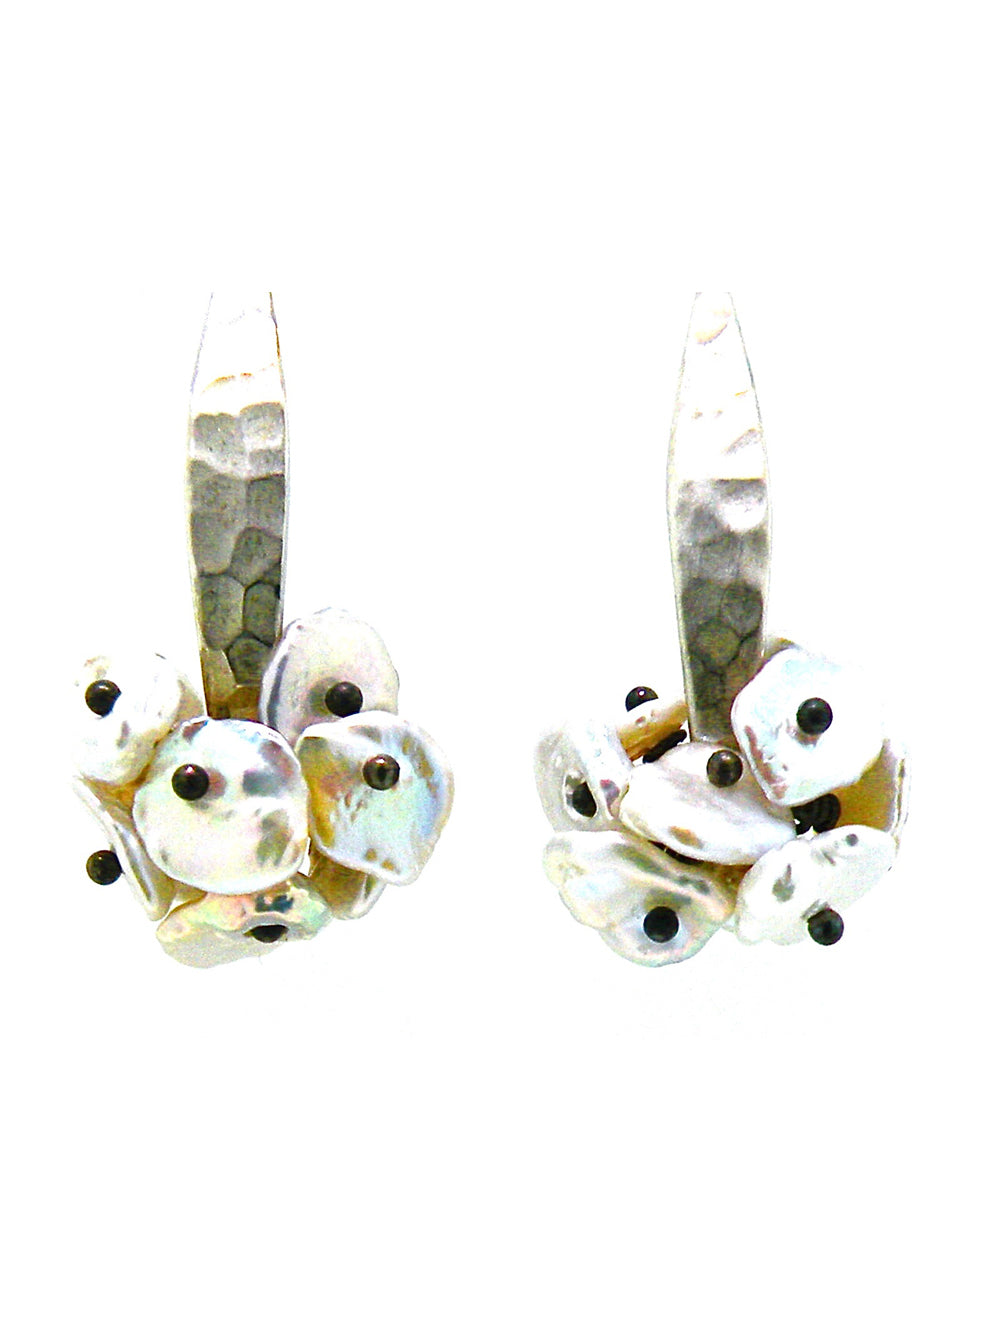 Hammered Keshi Pearl Earrings - Dana Busch Designs